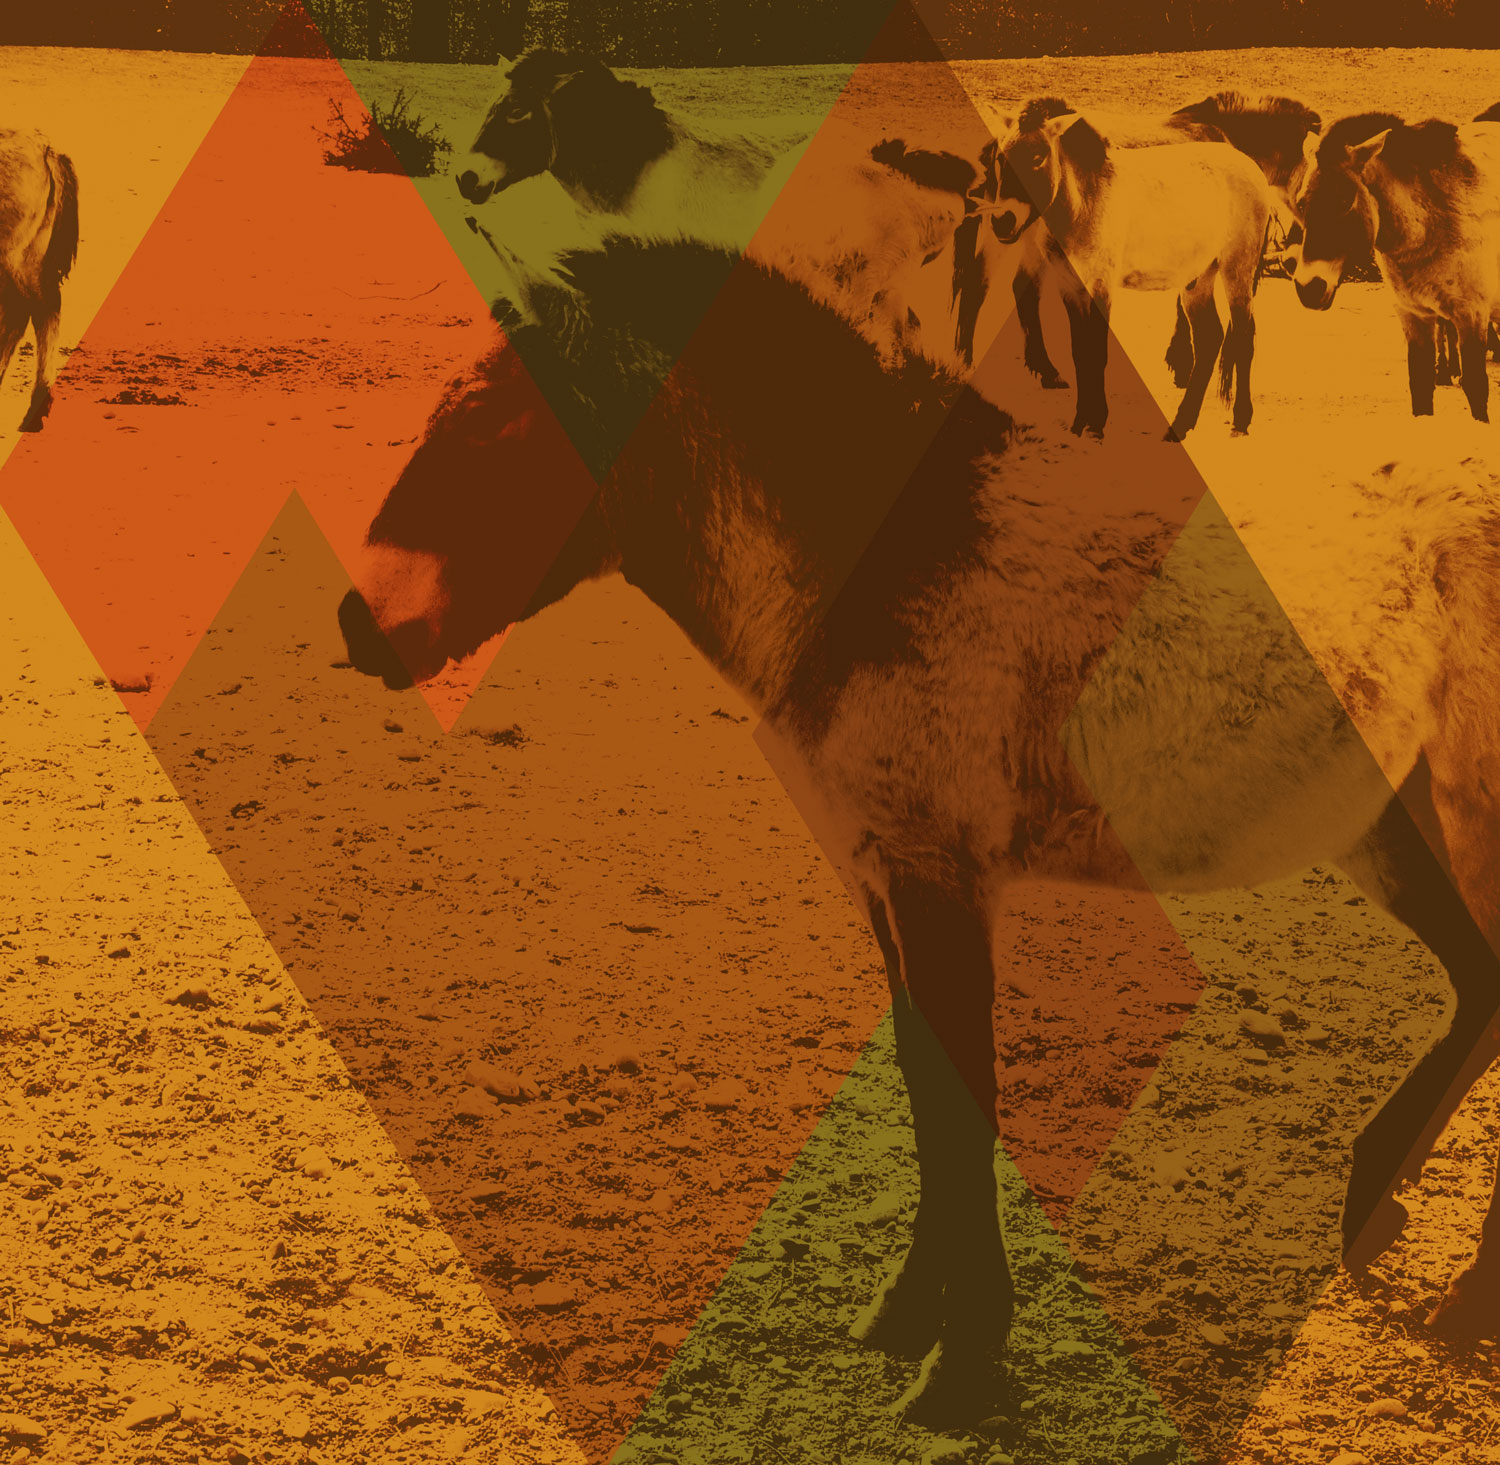 full screen background image